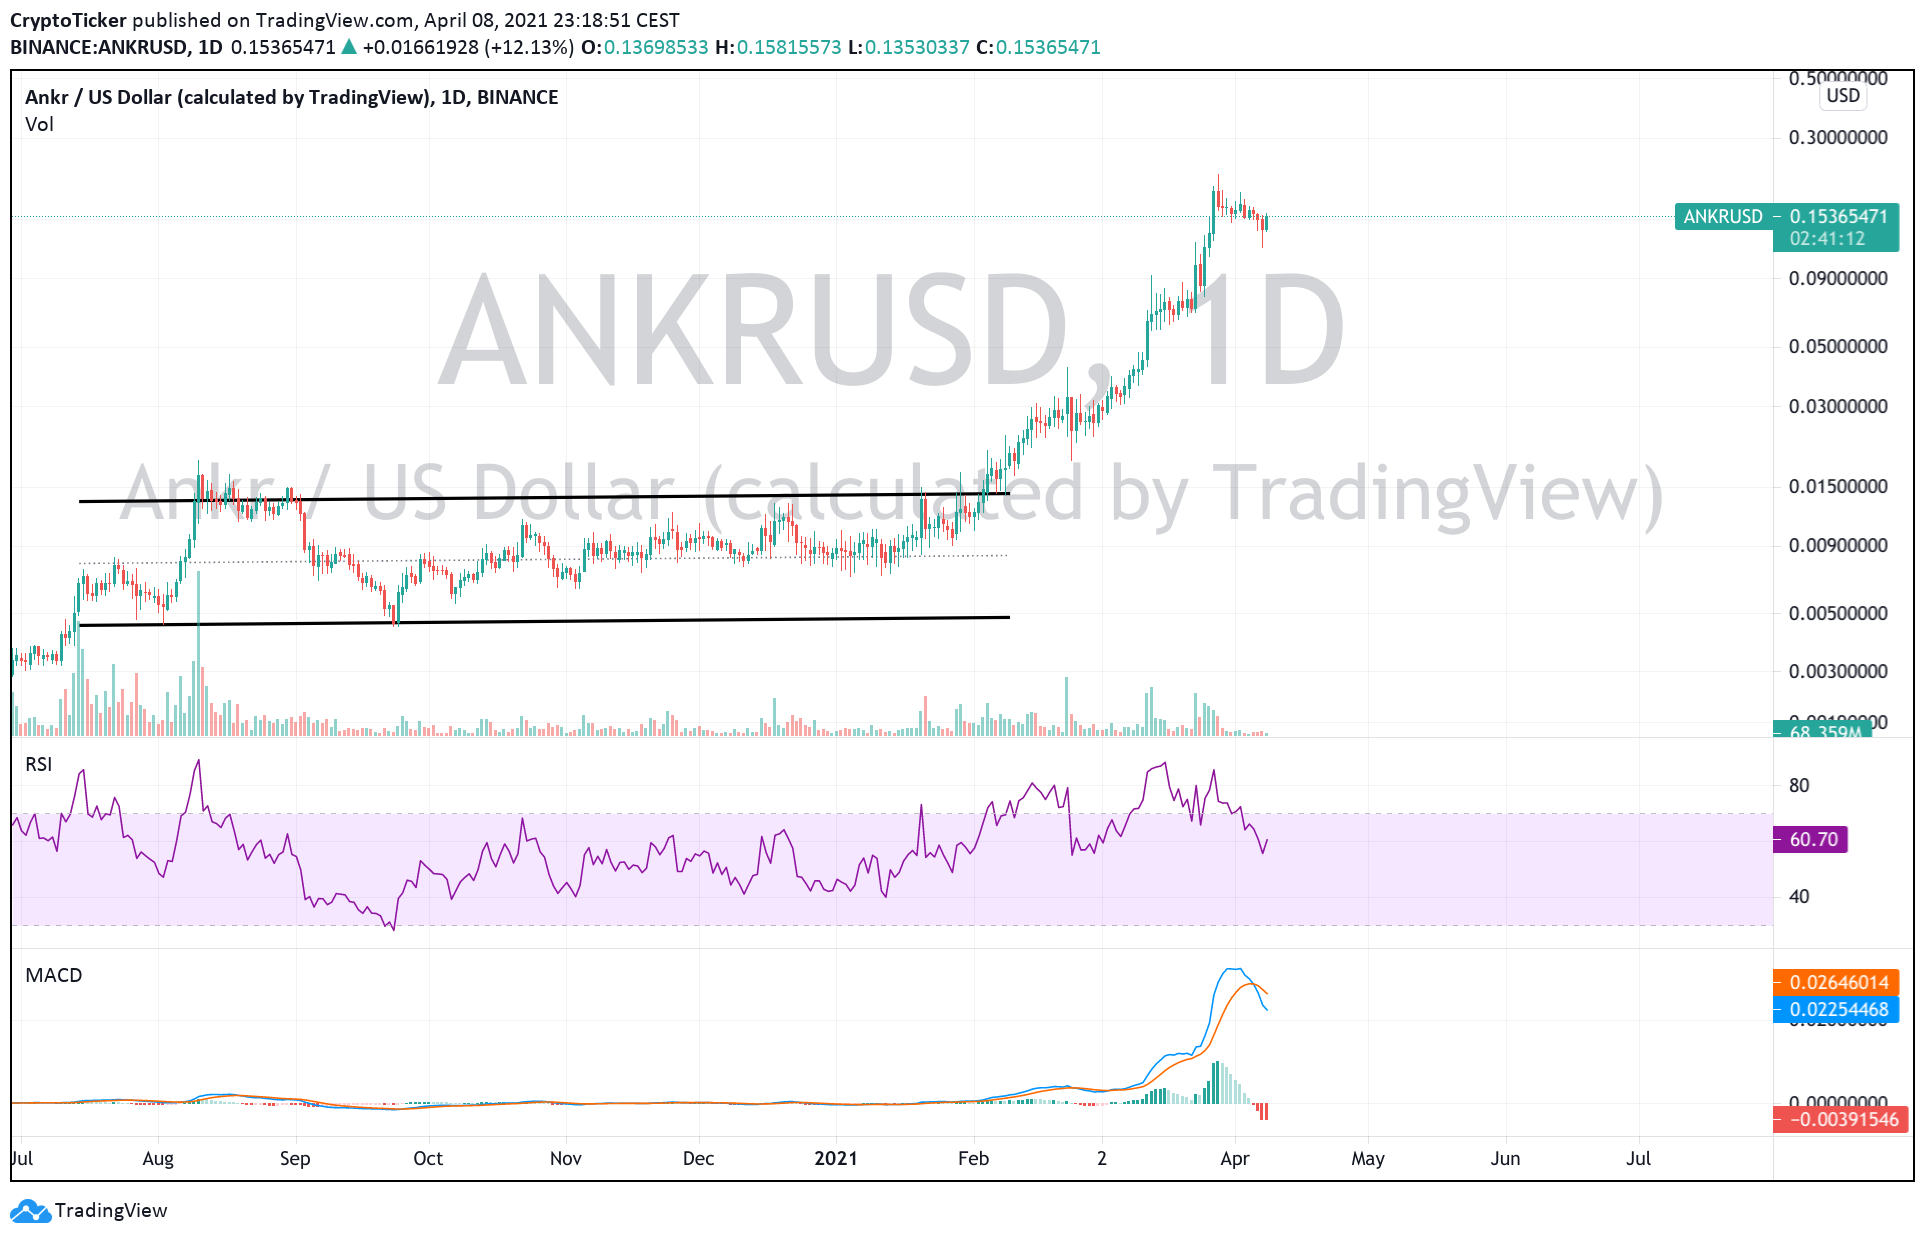 Top 5 altcoins to buy in April: ANKR/USD 1-Day chart